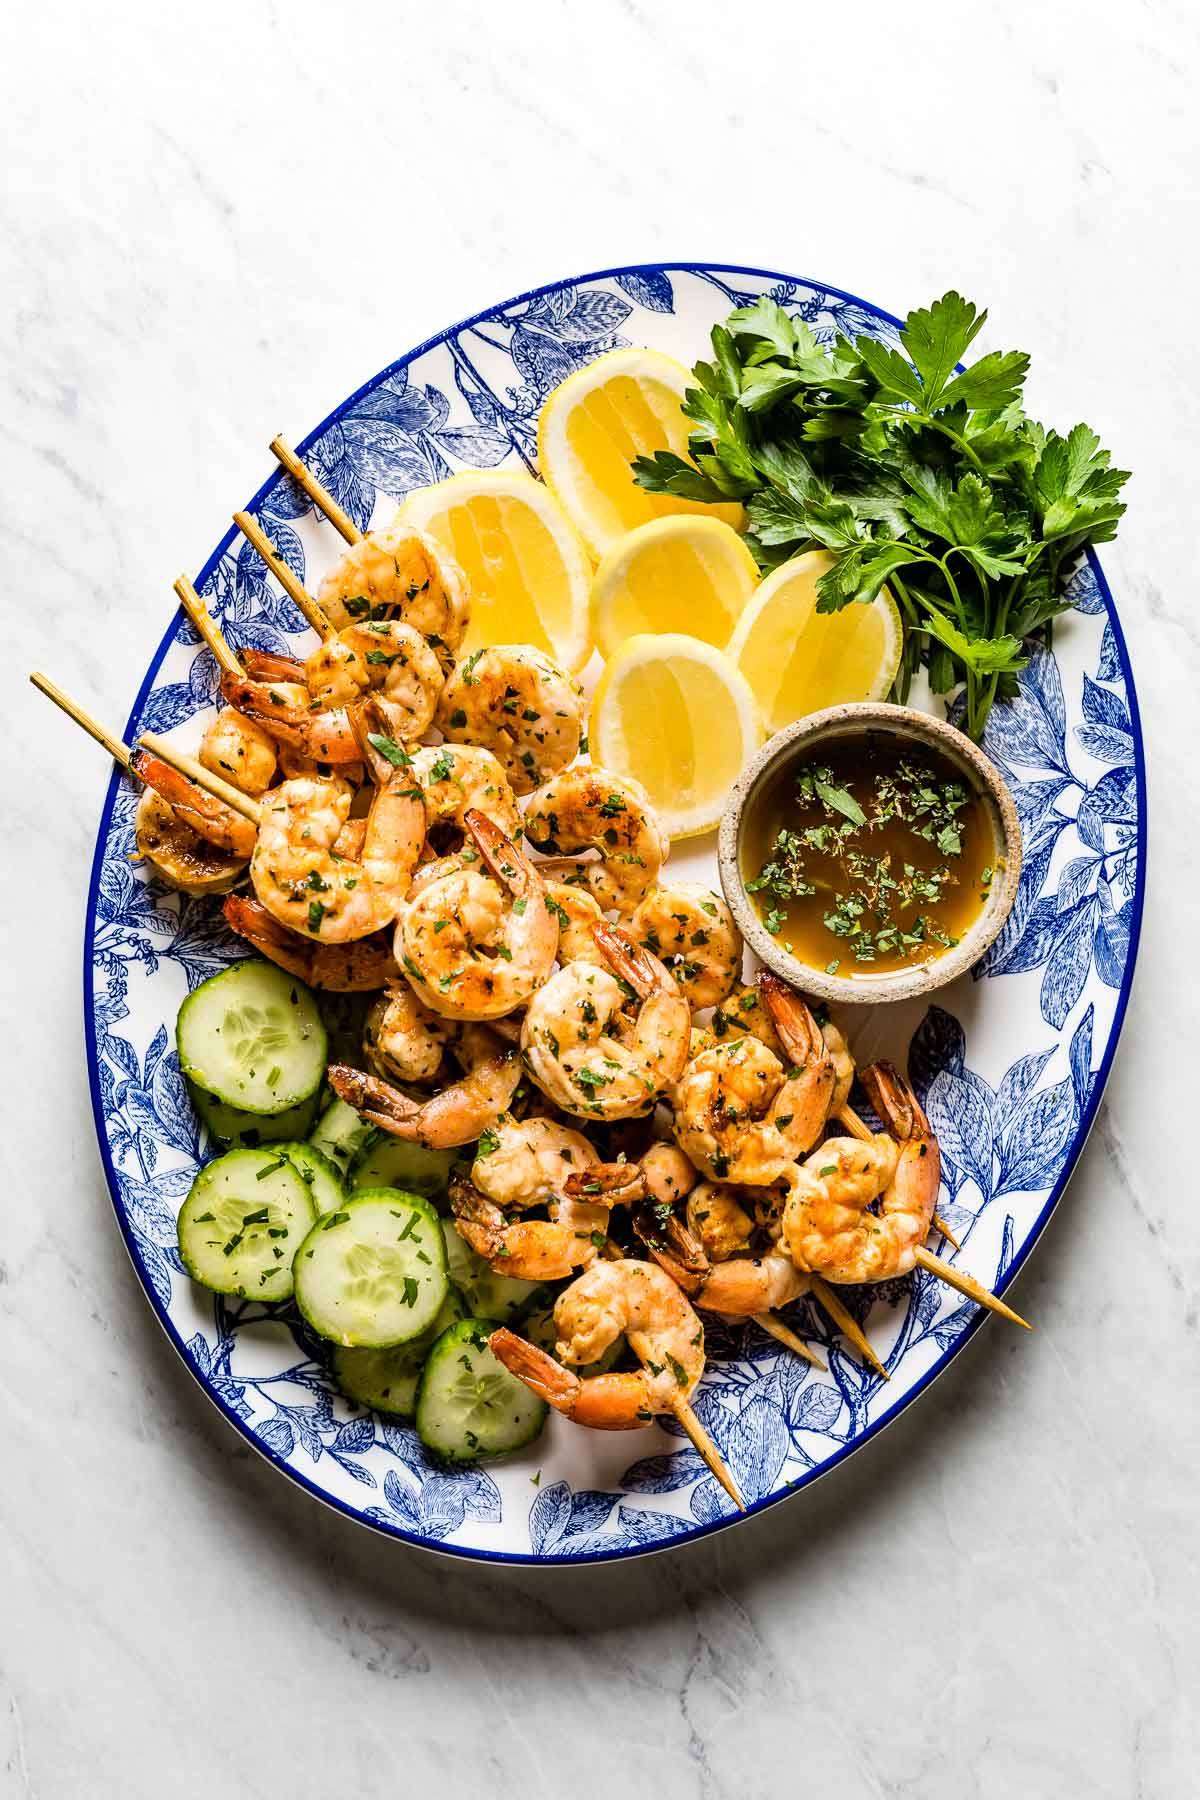 Grilled shrimp skewers on a plate with lemon, herbs and cucumber slices